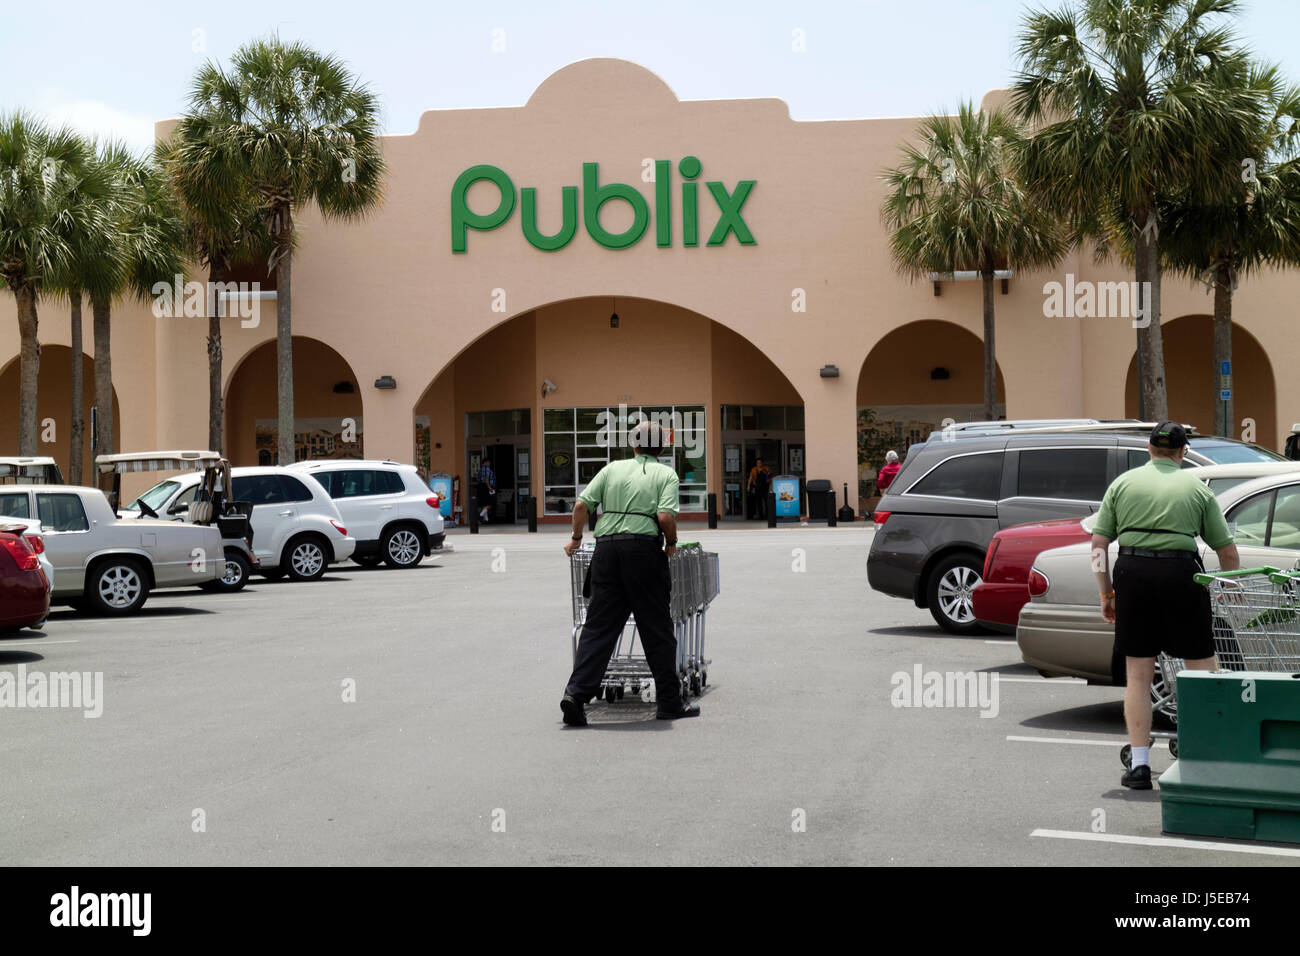 Man pushing trolleys at a Publix supermarket store in central Florida USA April 2017 - Stock Image